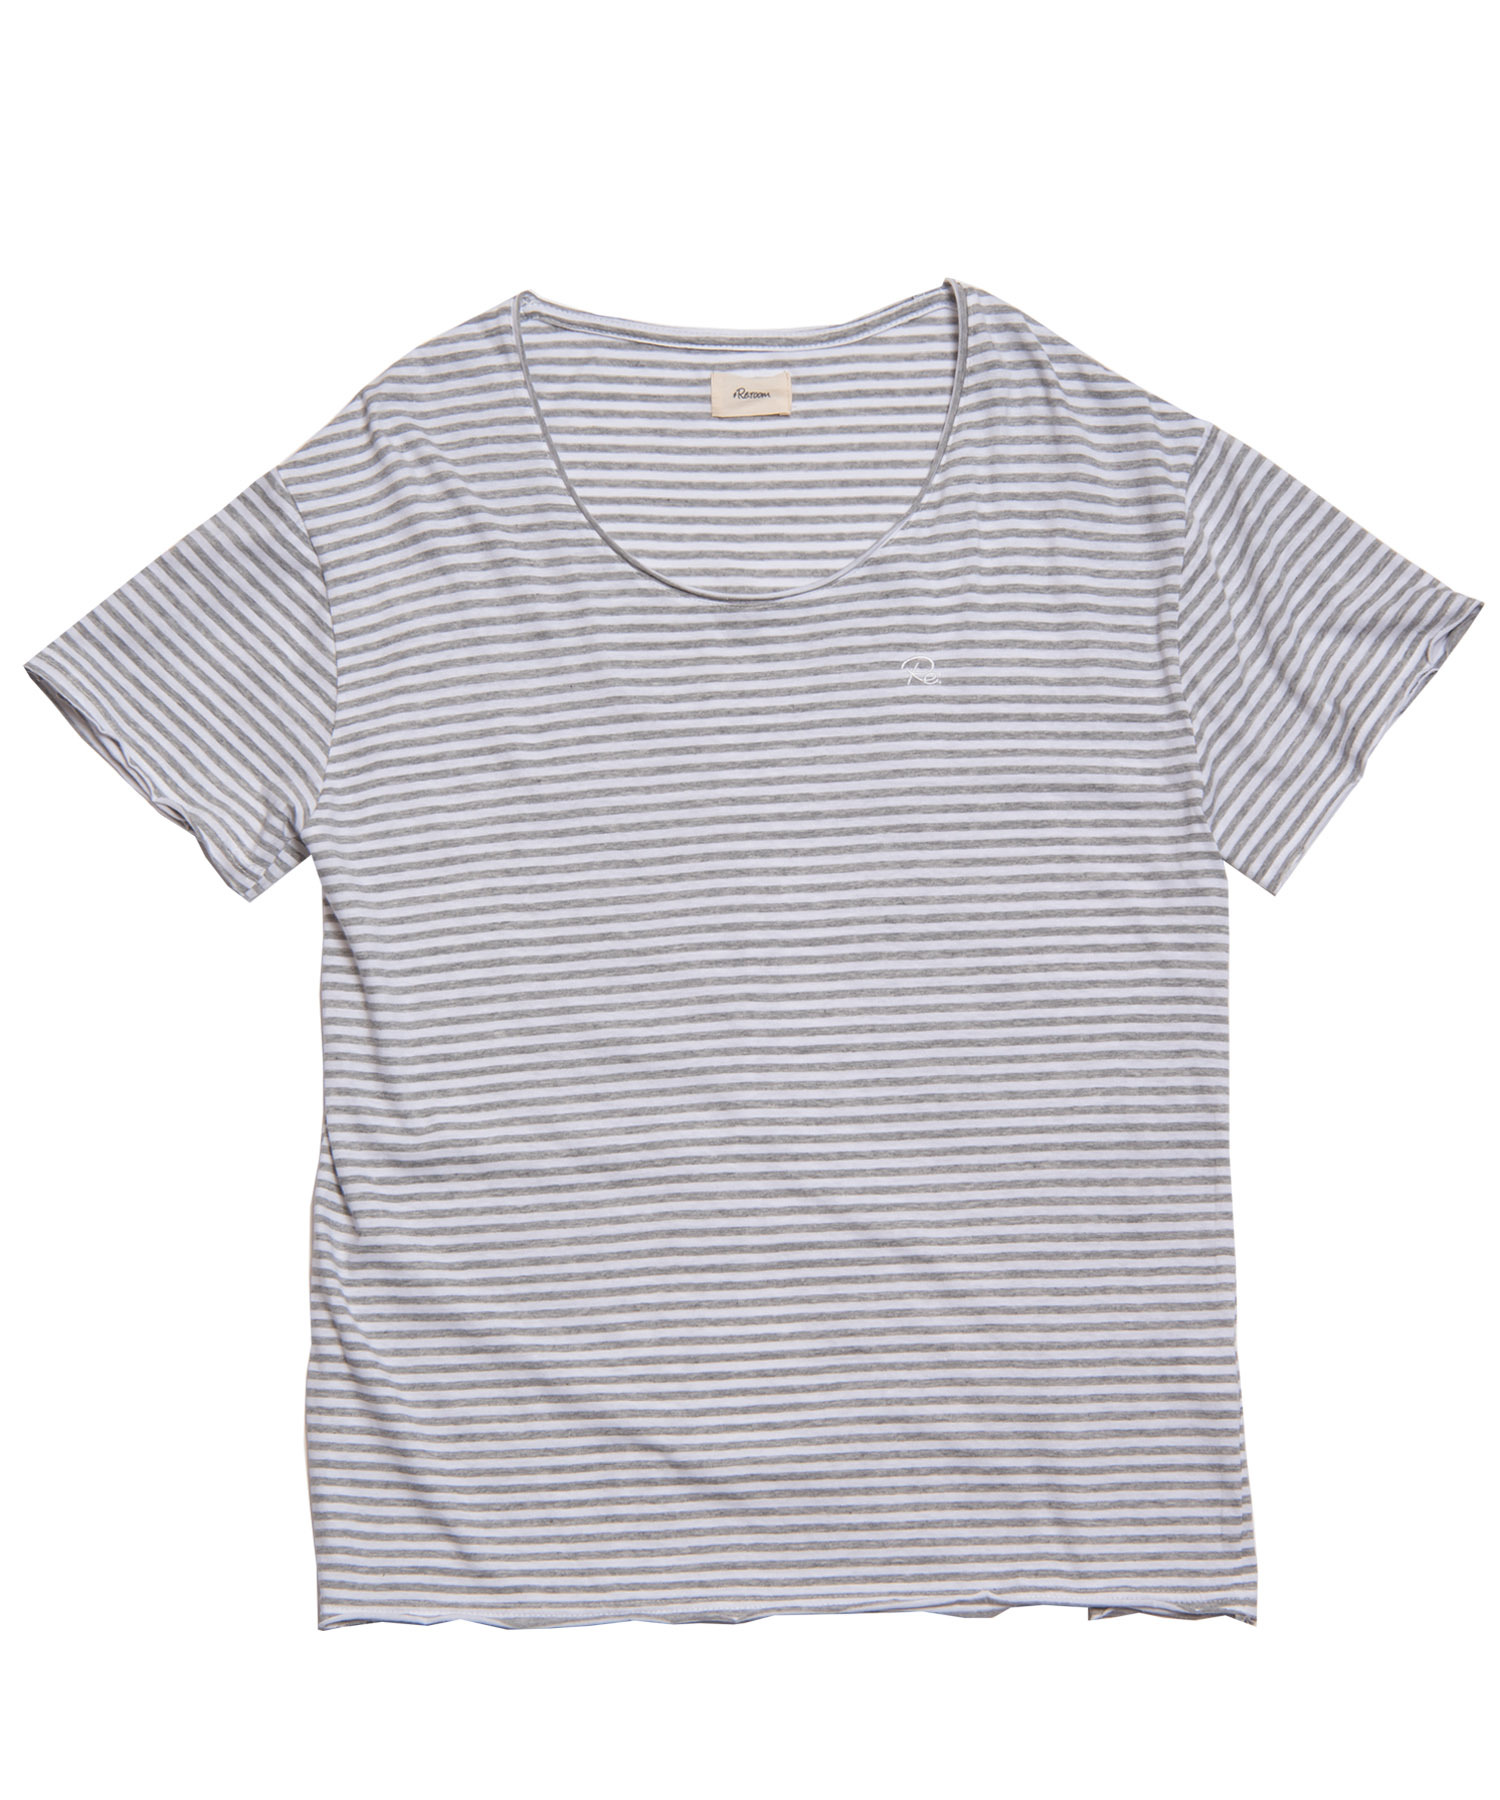 Re: ONE POINT BORDER BIG T-shirt[REC202]